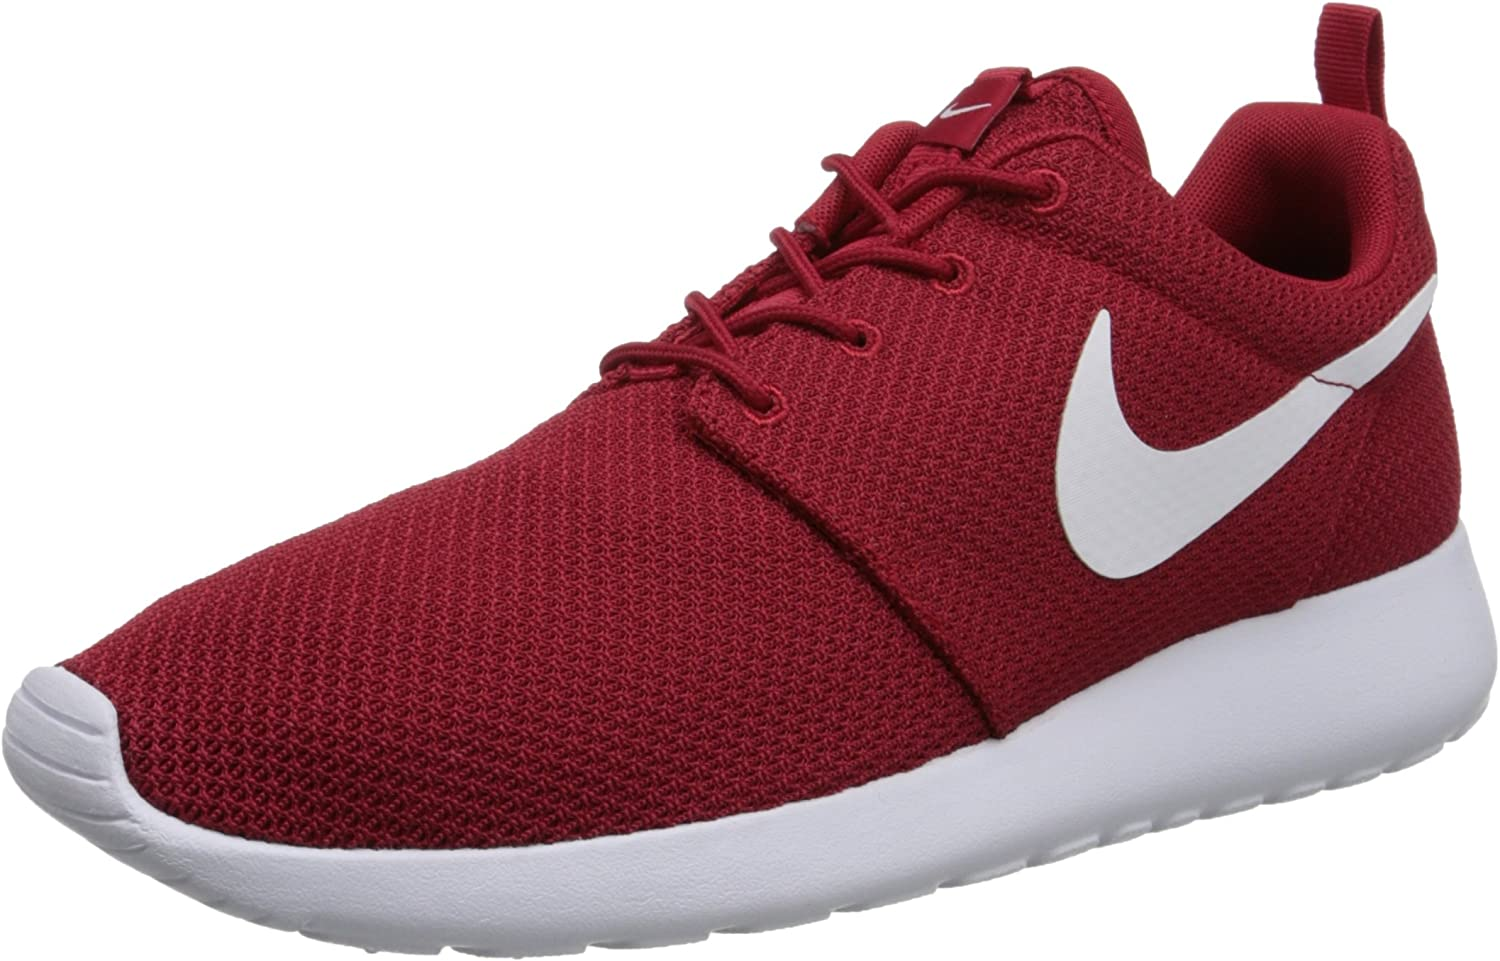 NIKE Roshe One Men s Sneakers Running Shoes 511881-612 US 8